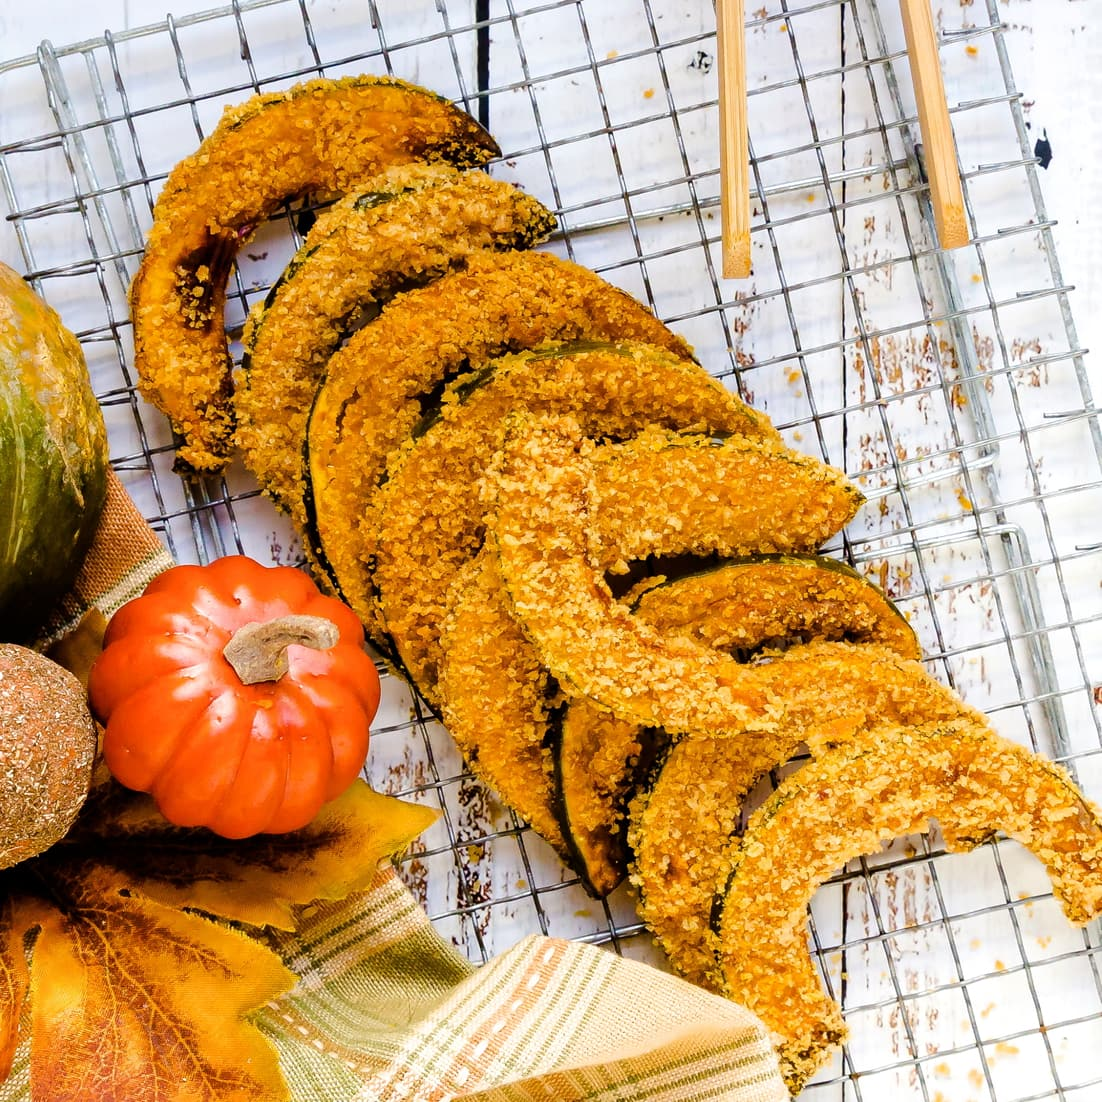 Keto Air Fryer Kabocha Pumpkin Fries layed out on a drying rack